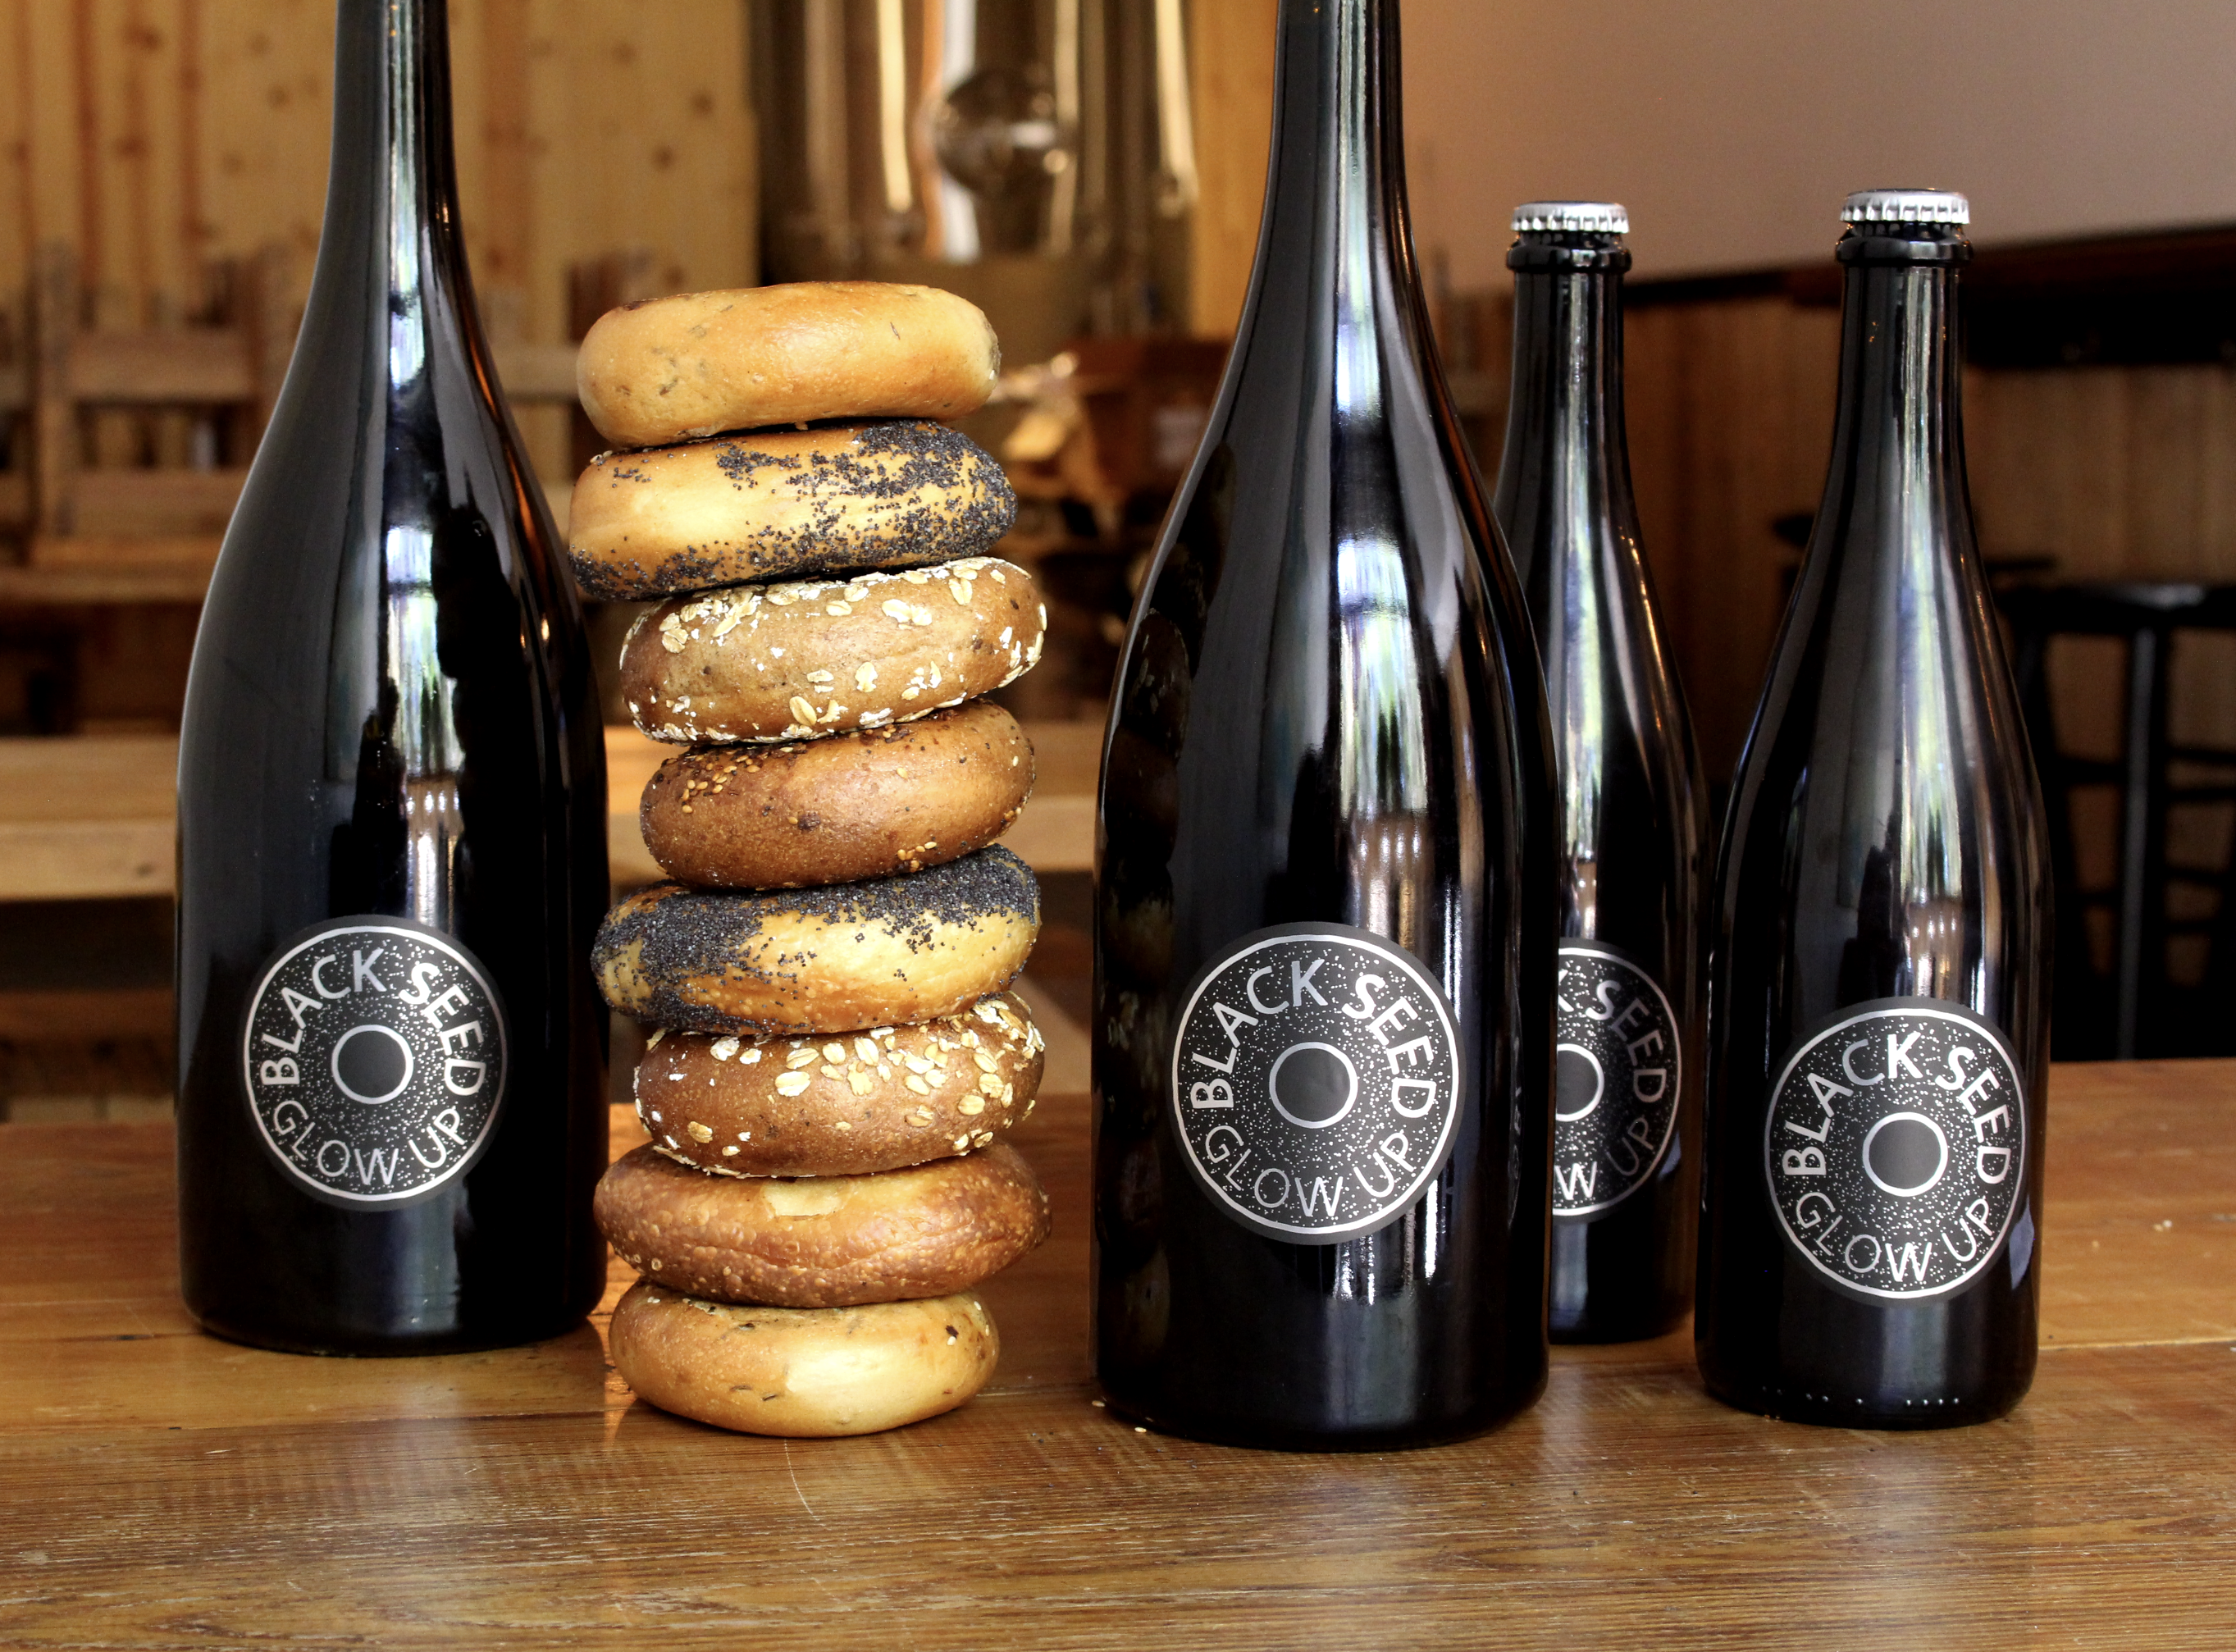 Two Brooklyn-based businesses have partnered to create Black Seed Glow Up, a limited-release beer brewed by Folksbier using Black Seed's leftover bagels.